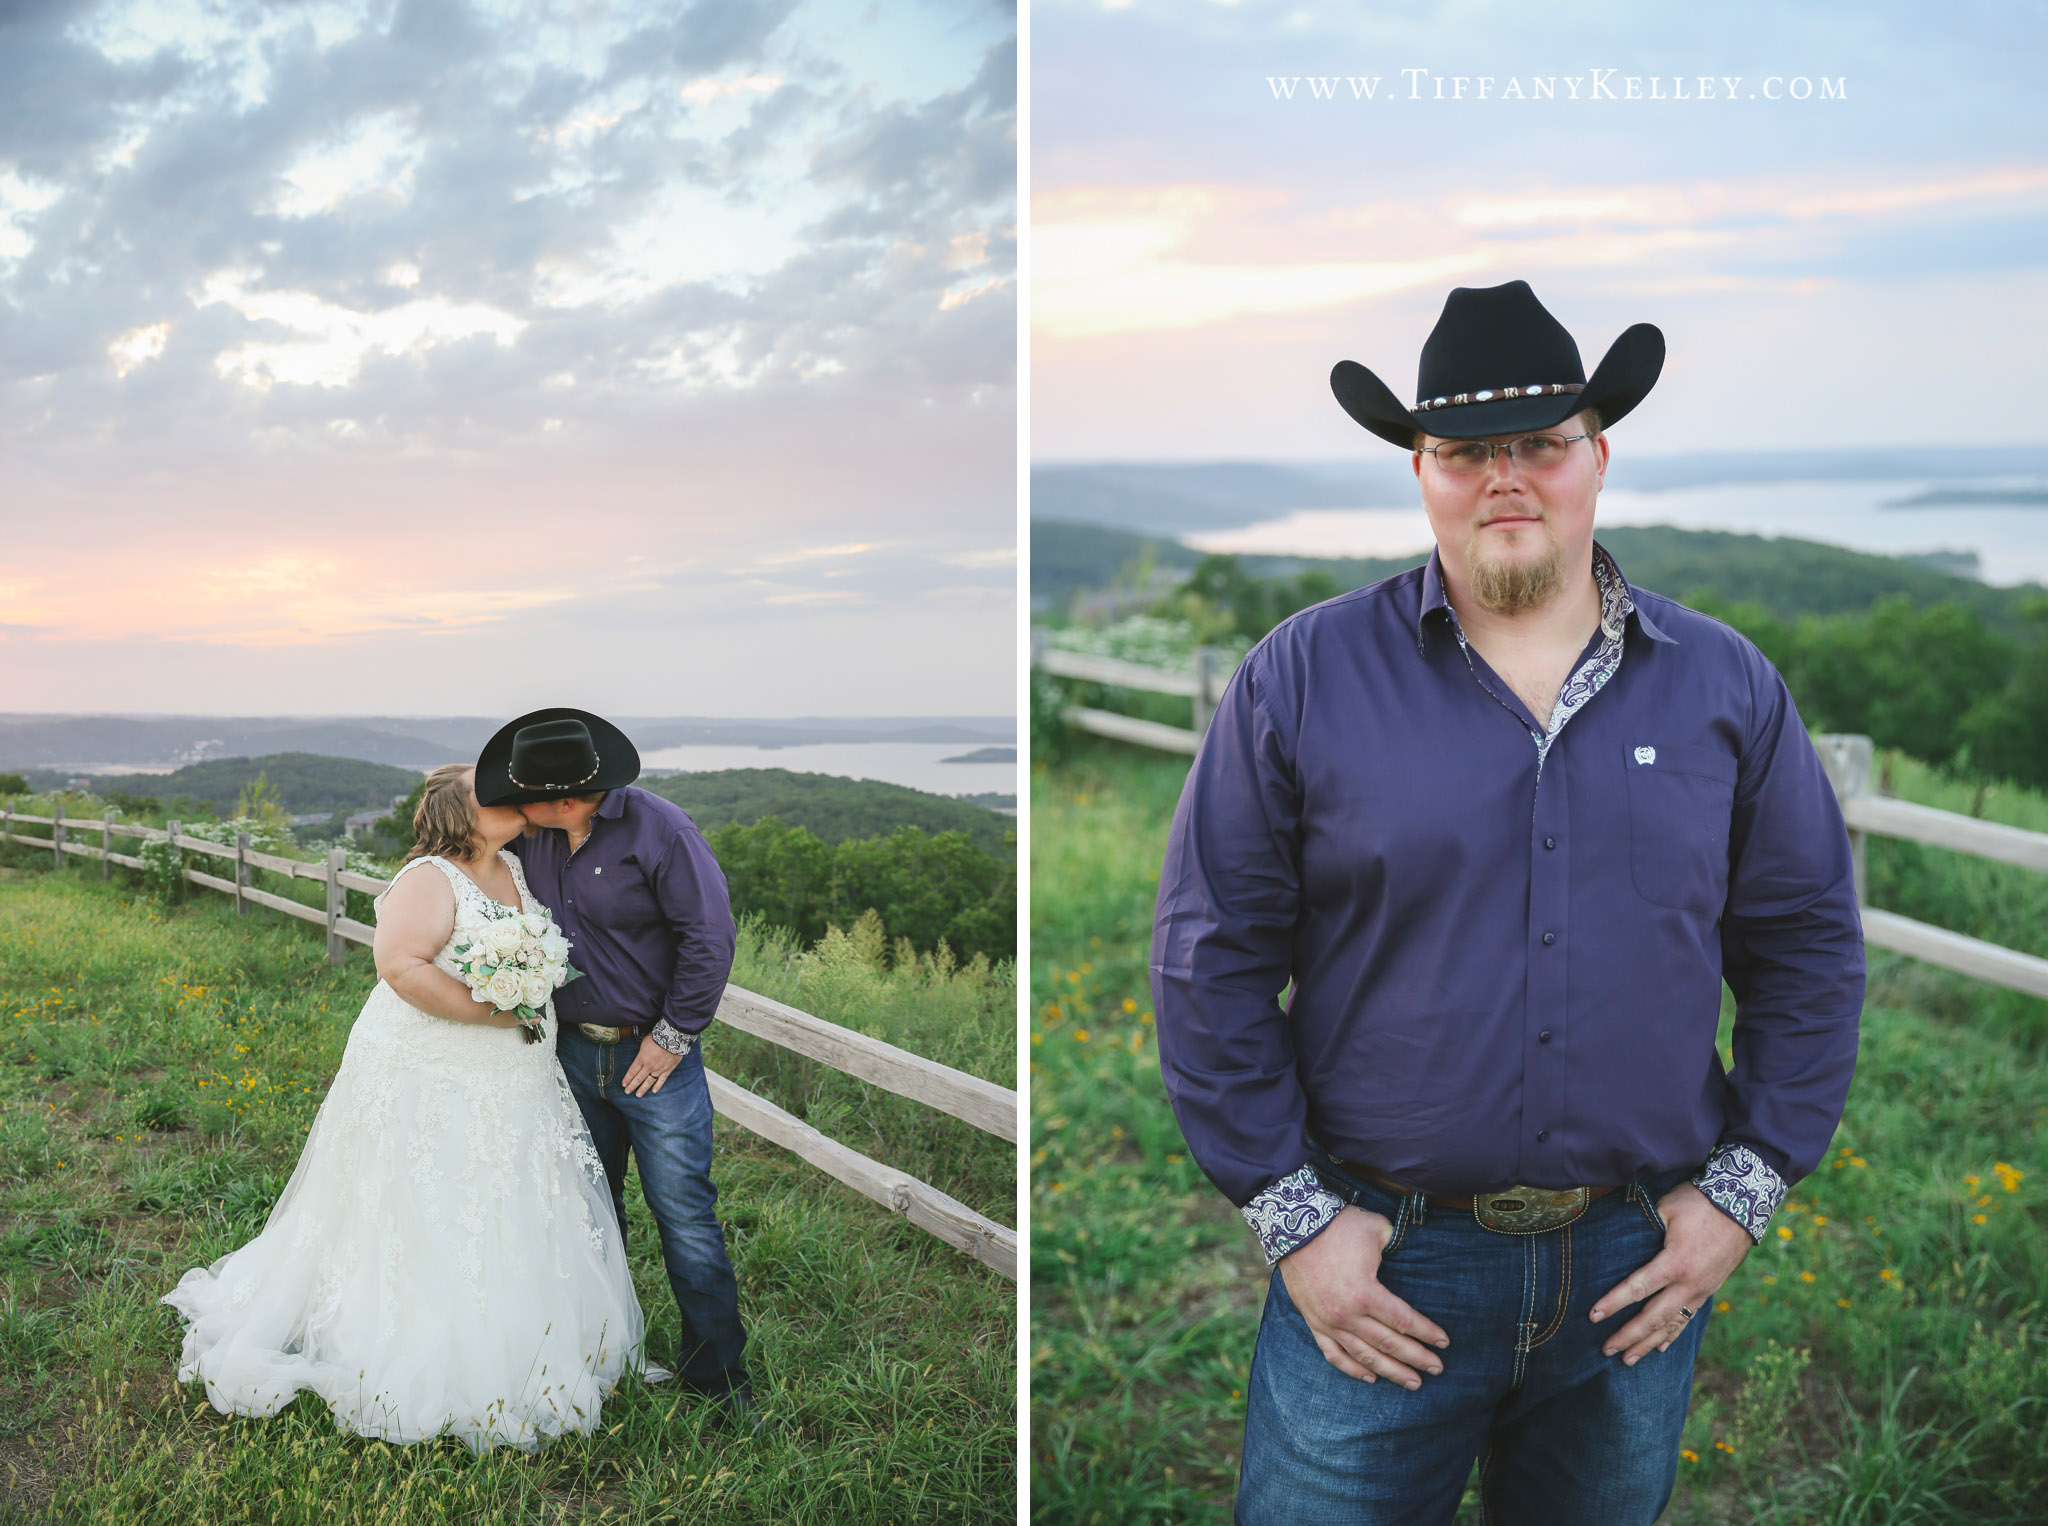 branson-missouri-big-cedar-lodge-wedding-photographer-tiffany-kelley-photography-15